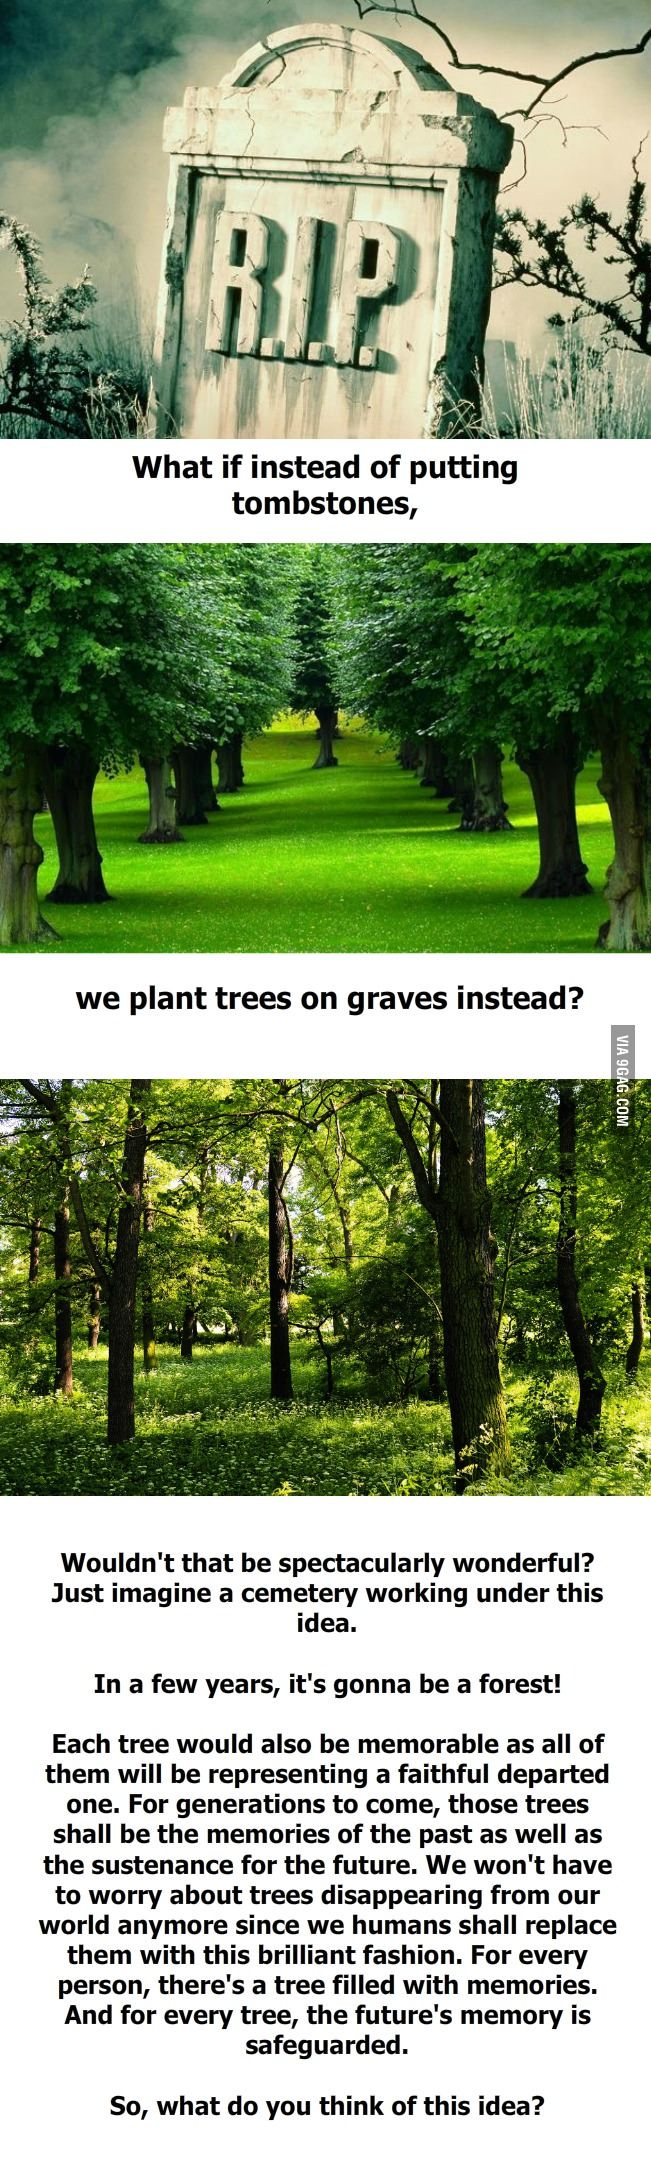 What if we plant trees on graves instead of putting tombstones?